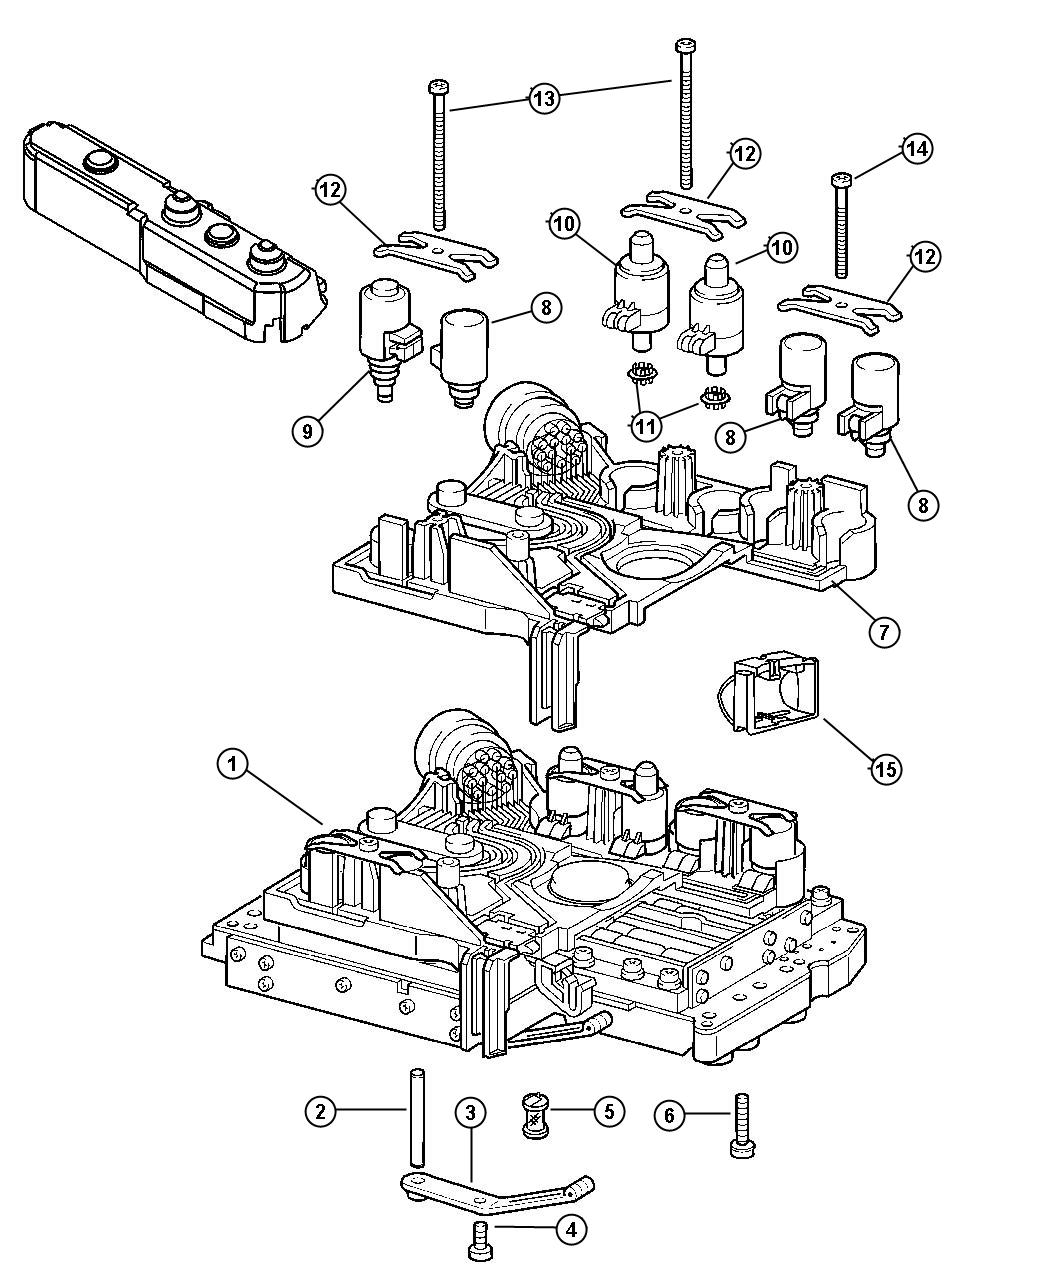 Dodge Charger Connector, connector assembly. Electrical